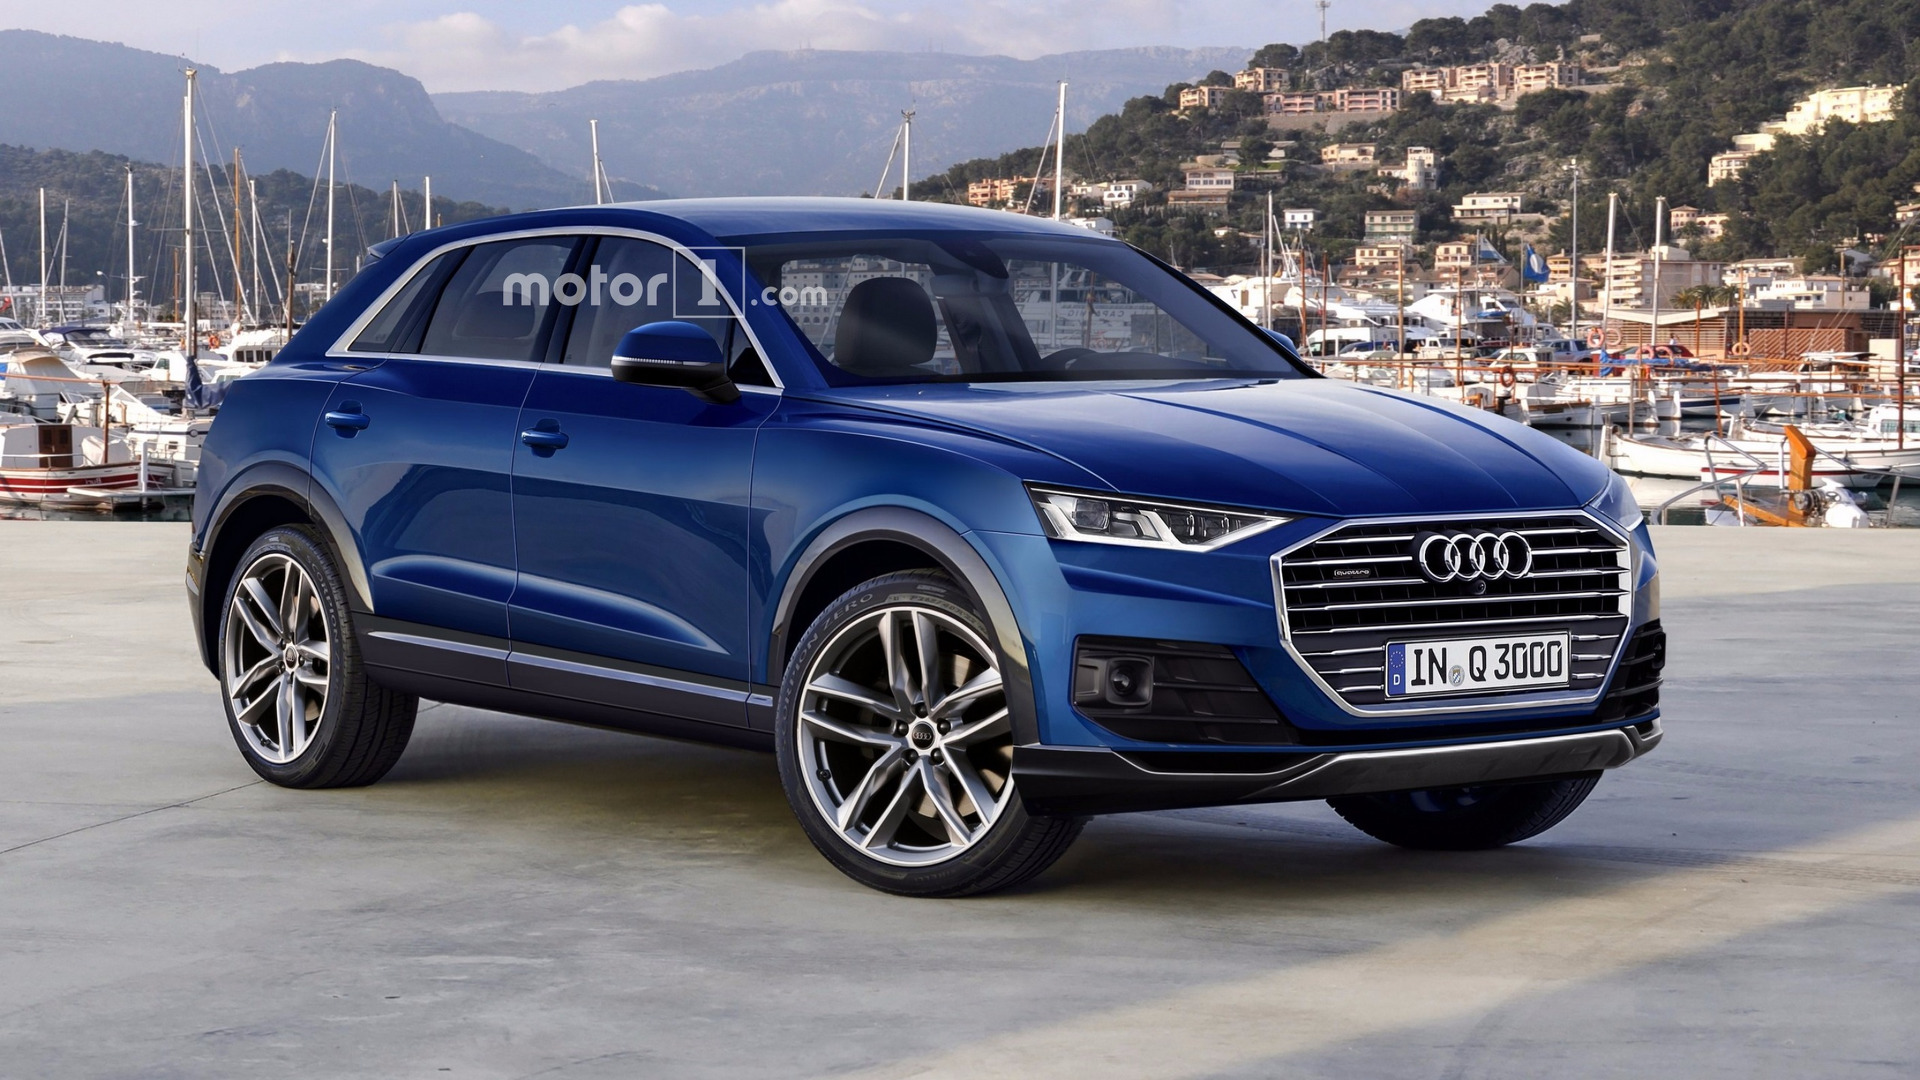 2018 Audi Q3 Review Expected Date Of Arrival >> We Imagine A More Sophisticated 2018 Audi Q3